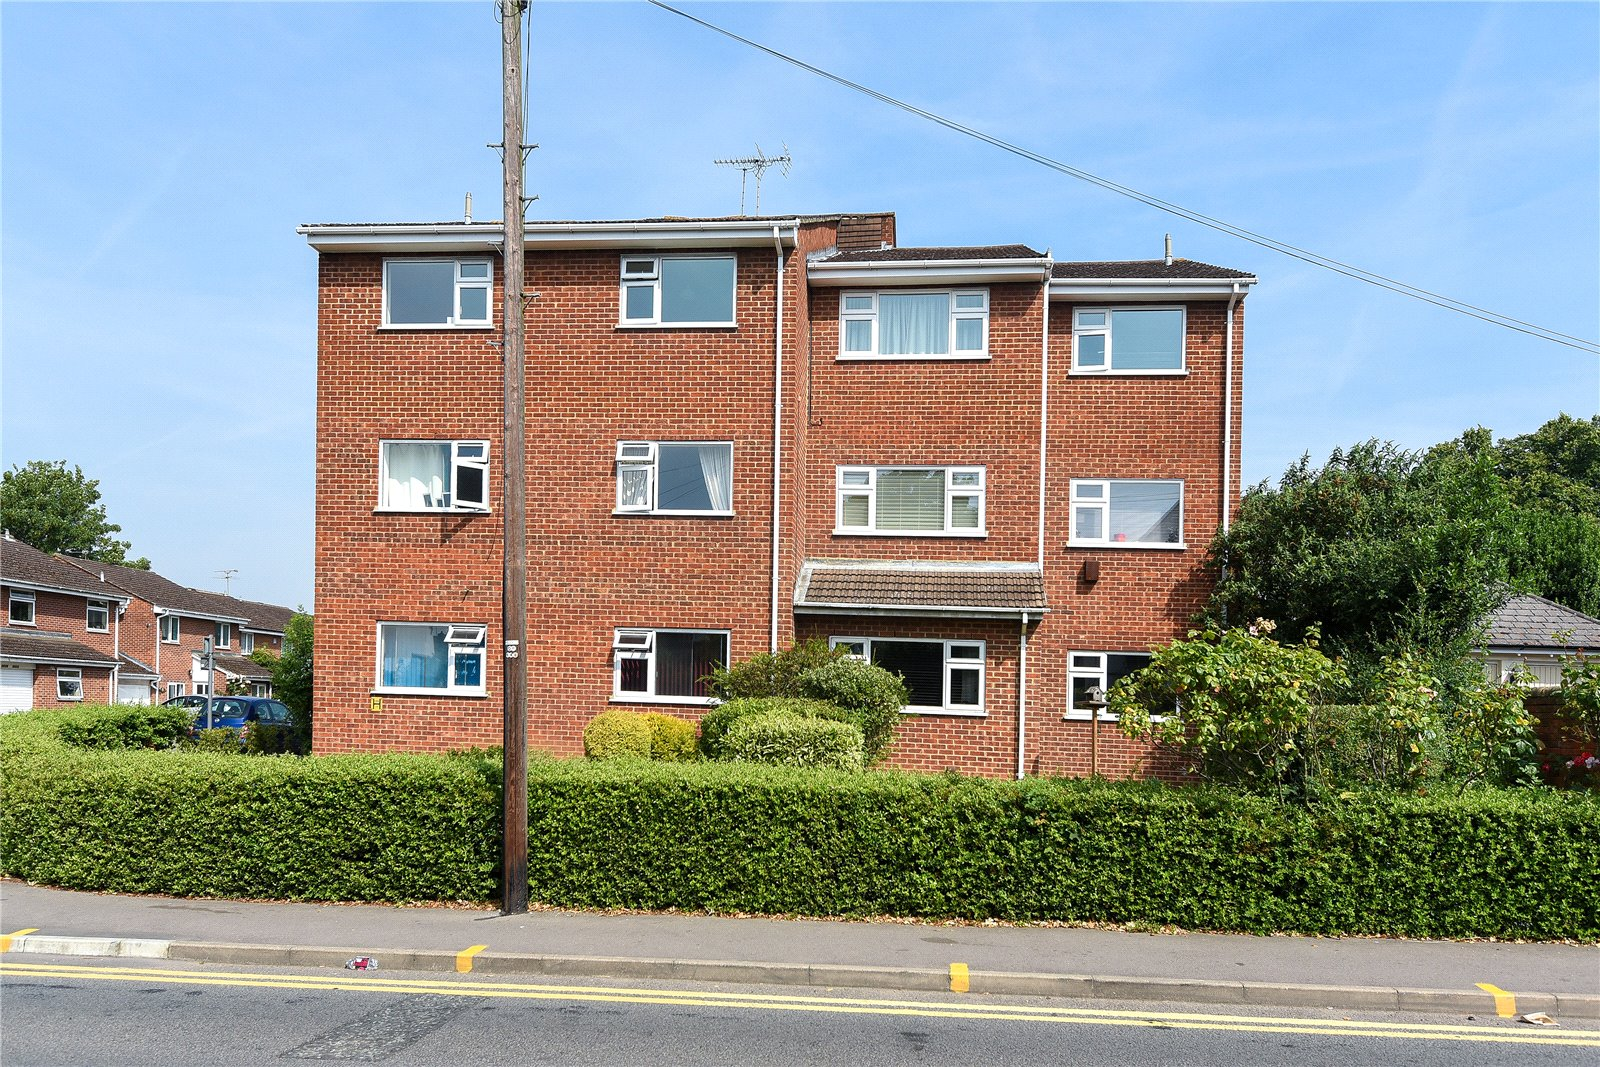 2 Bedrooms Apartment Flat for sale in Olivia Court, Alderman Willey Close, Wokingham, Berkshire, RG41